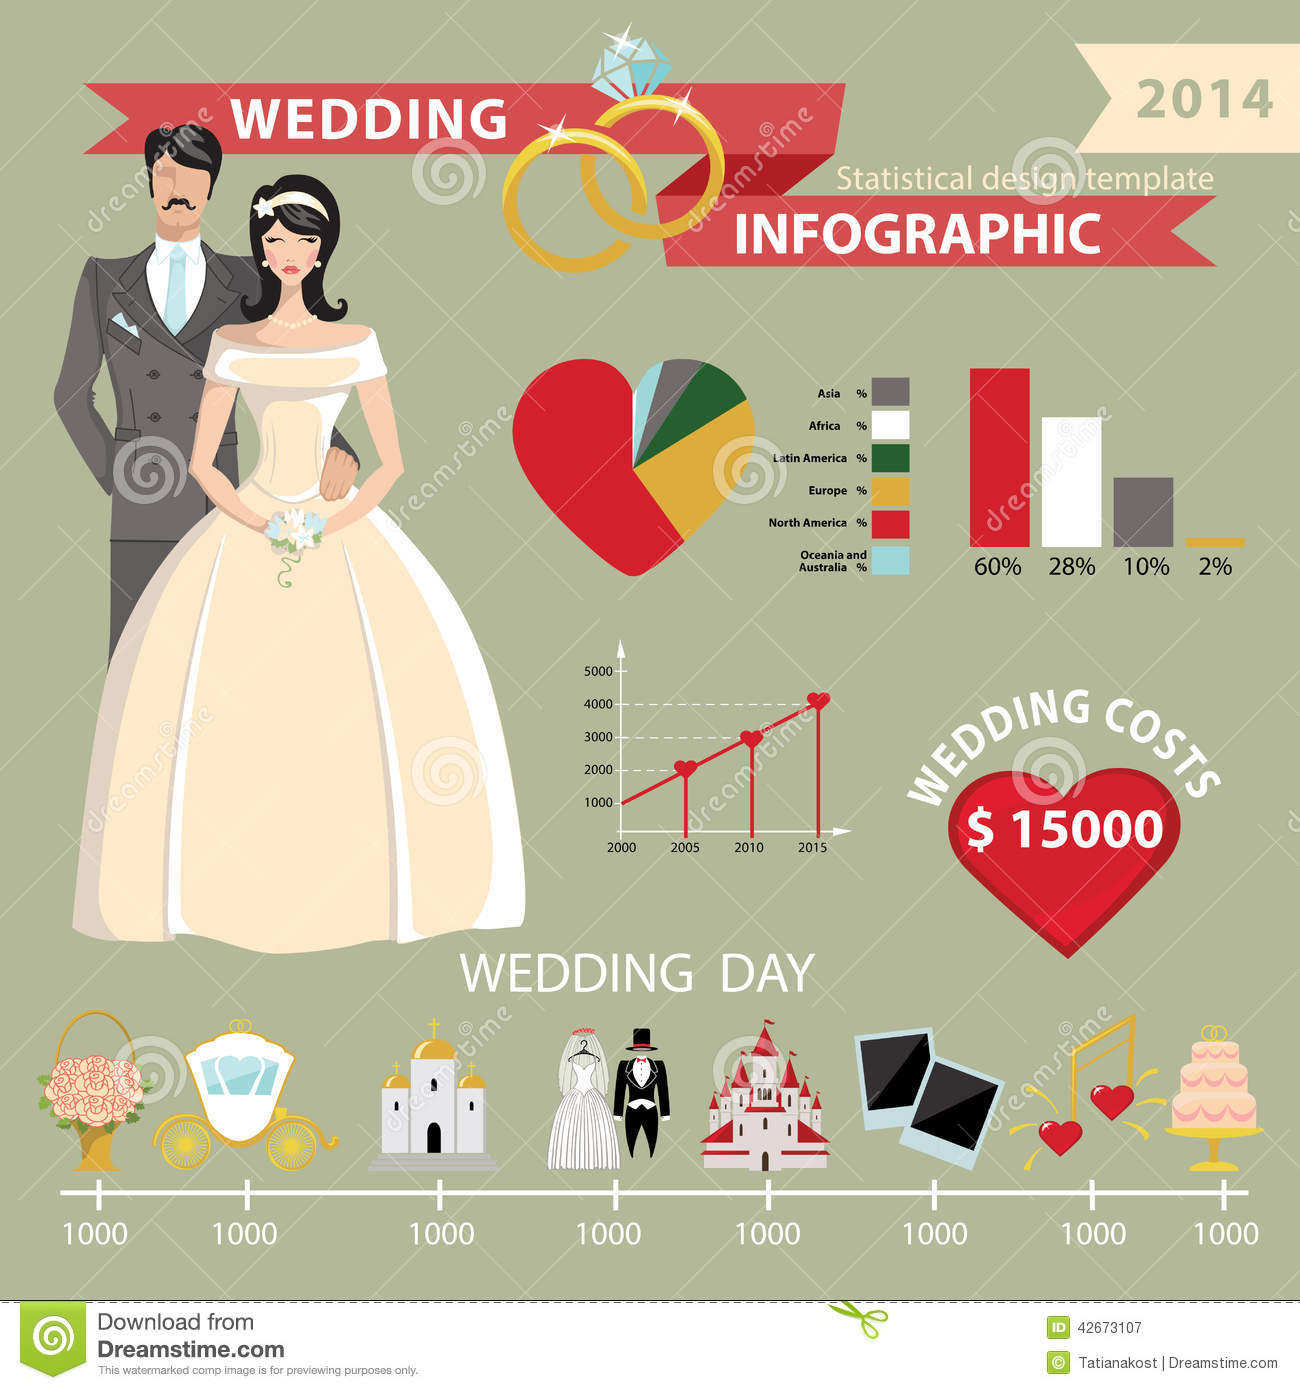 Wedding Infographics Set With Cartoon Bride And GroomWedding Day Statistics Design TemplateVector Business Concepts Flat Icons For Loop